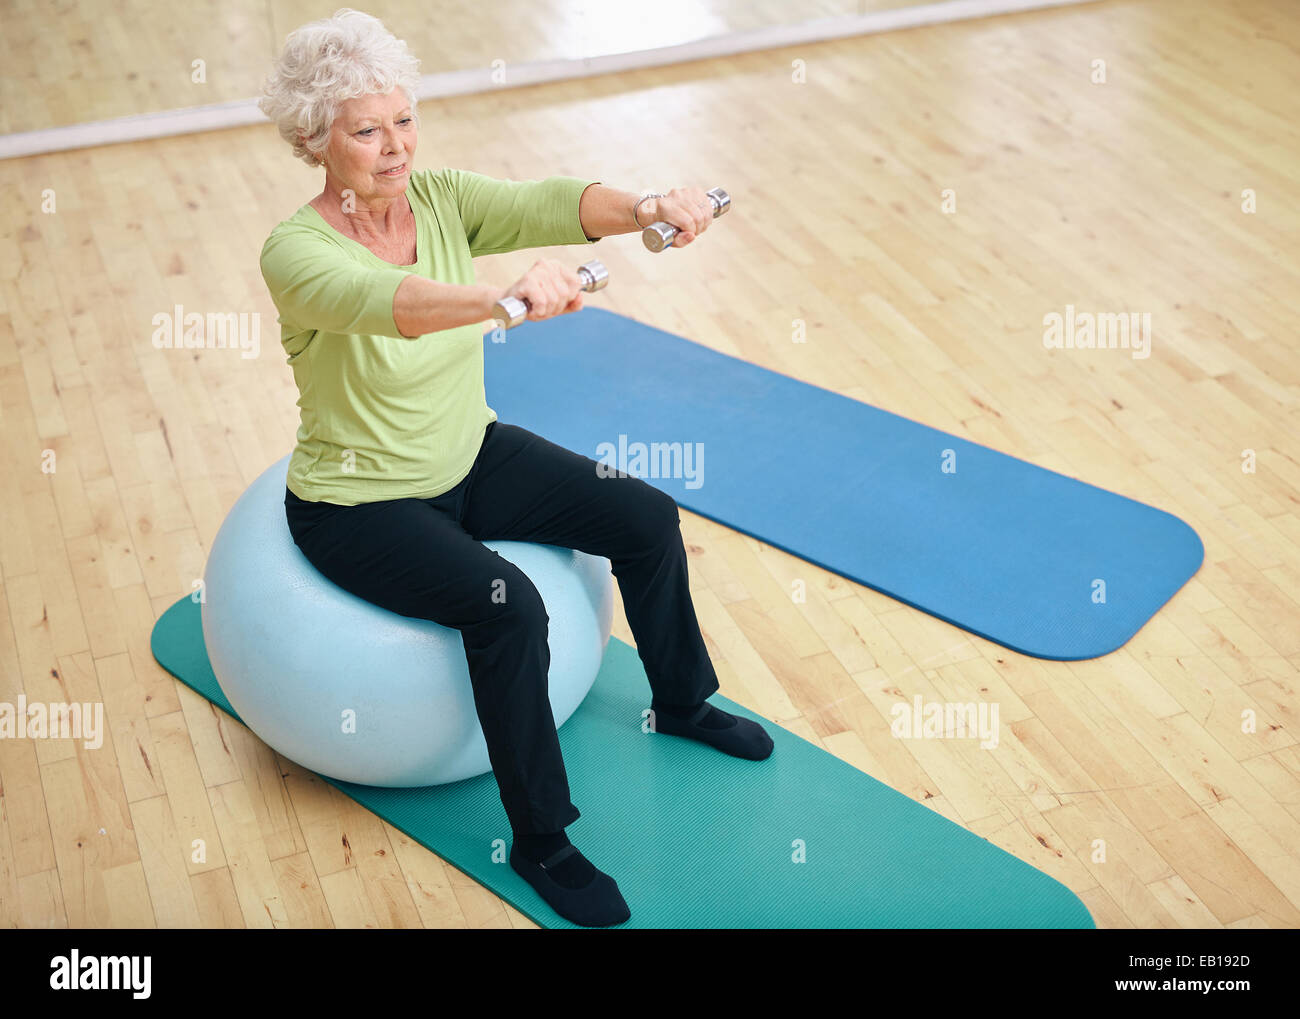 Senior female sitting on a fitness ball and lifting dumbbells. Old woman exercising with weights at gym. - Stock Image